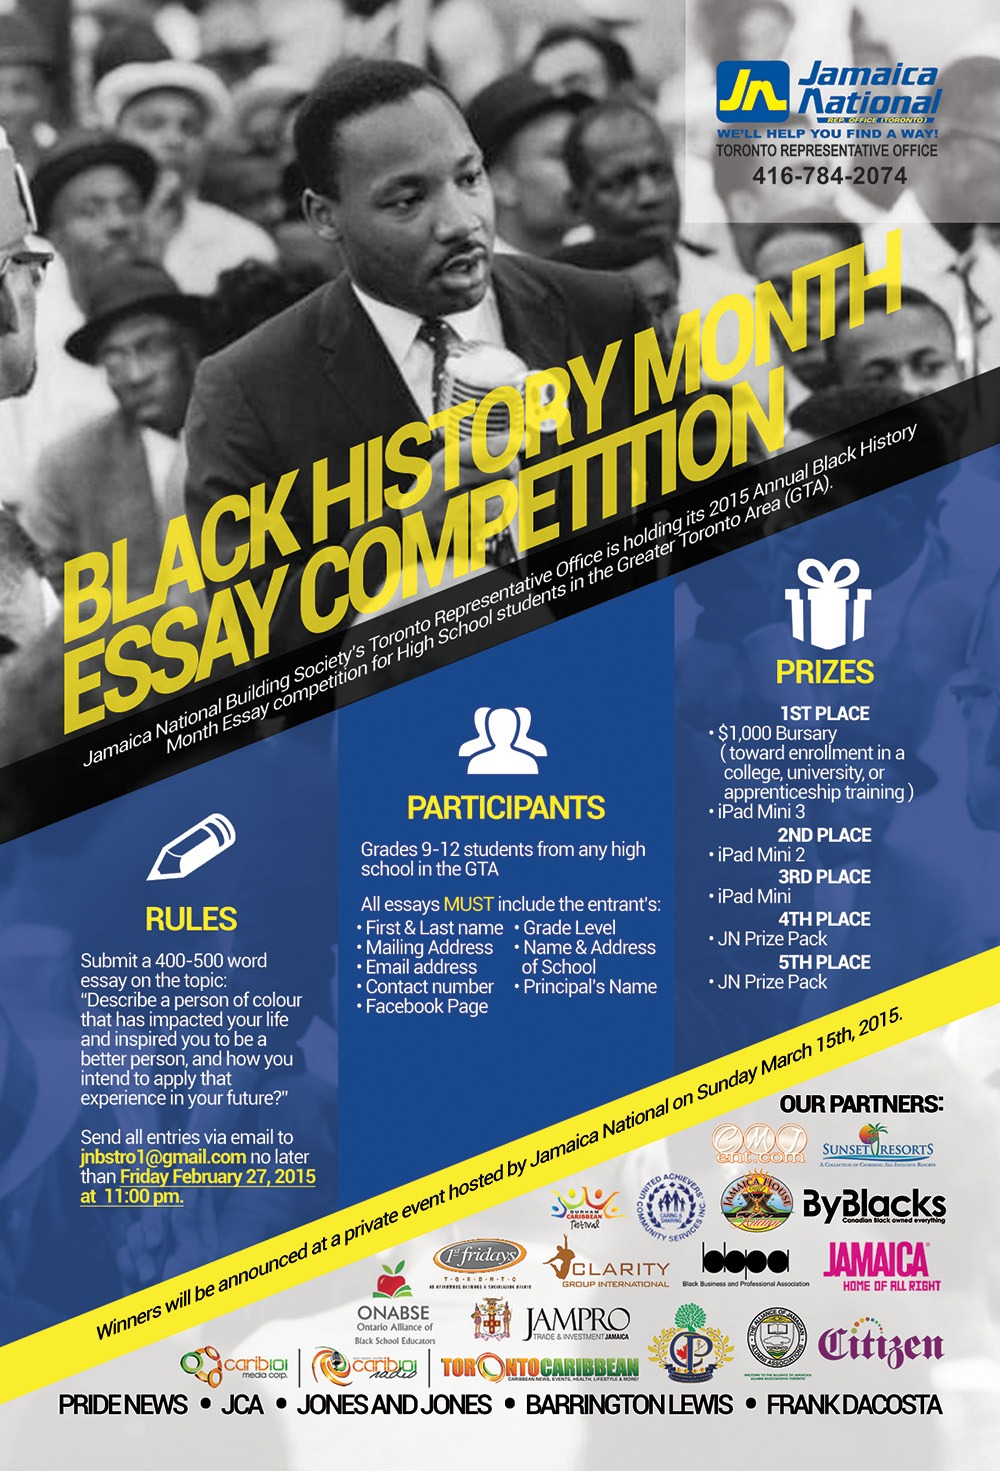 black history month 2015 meticulous design studios client national rep office toronto x cmj entertainment